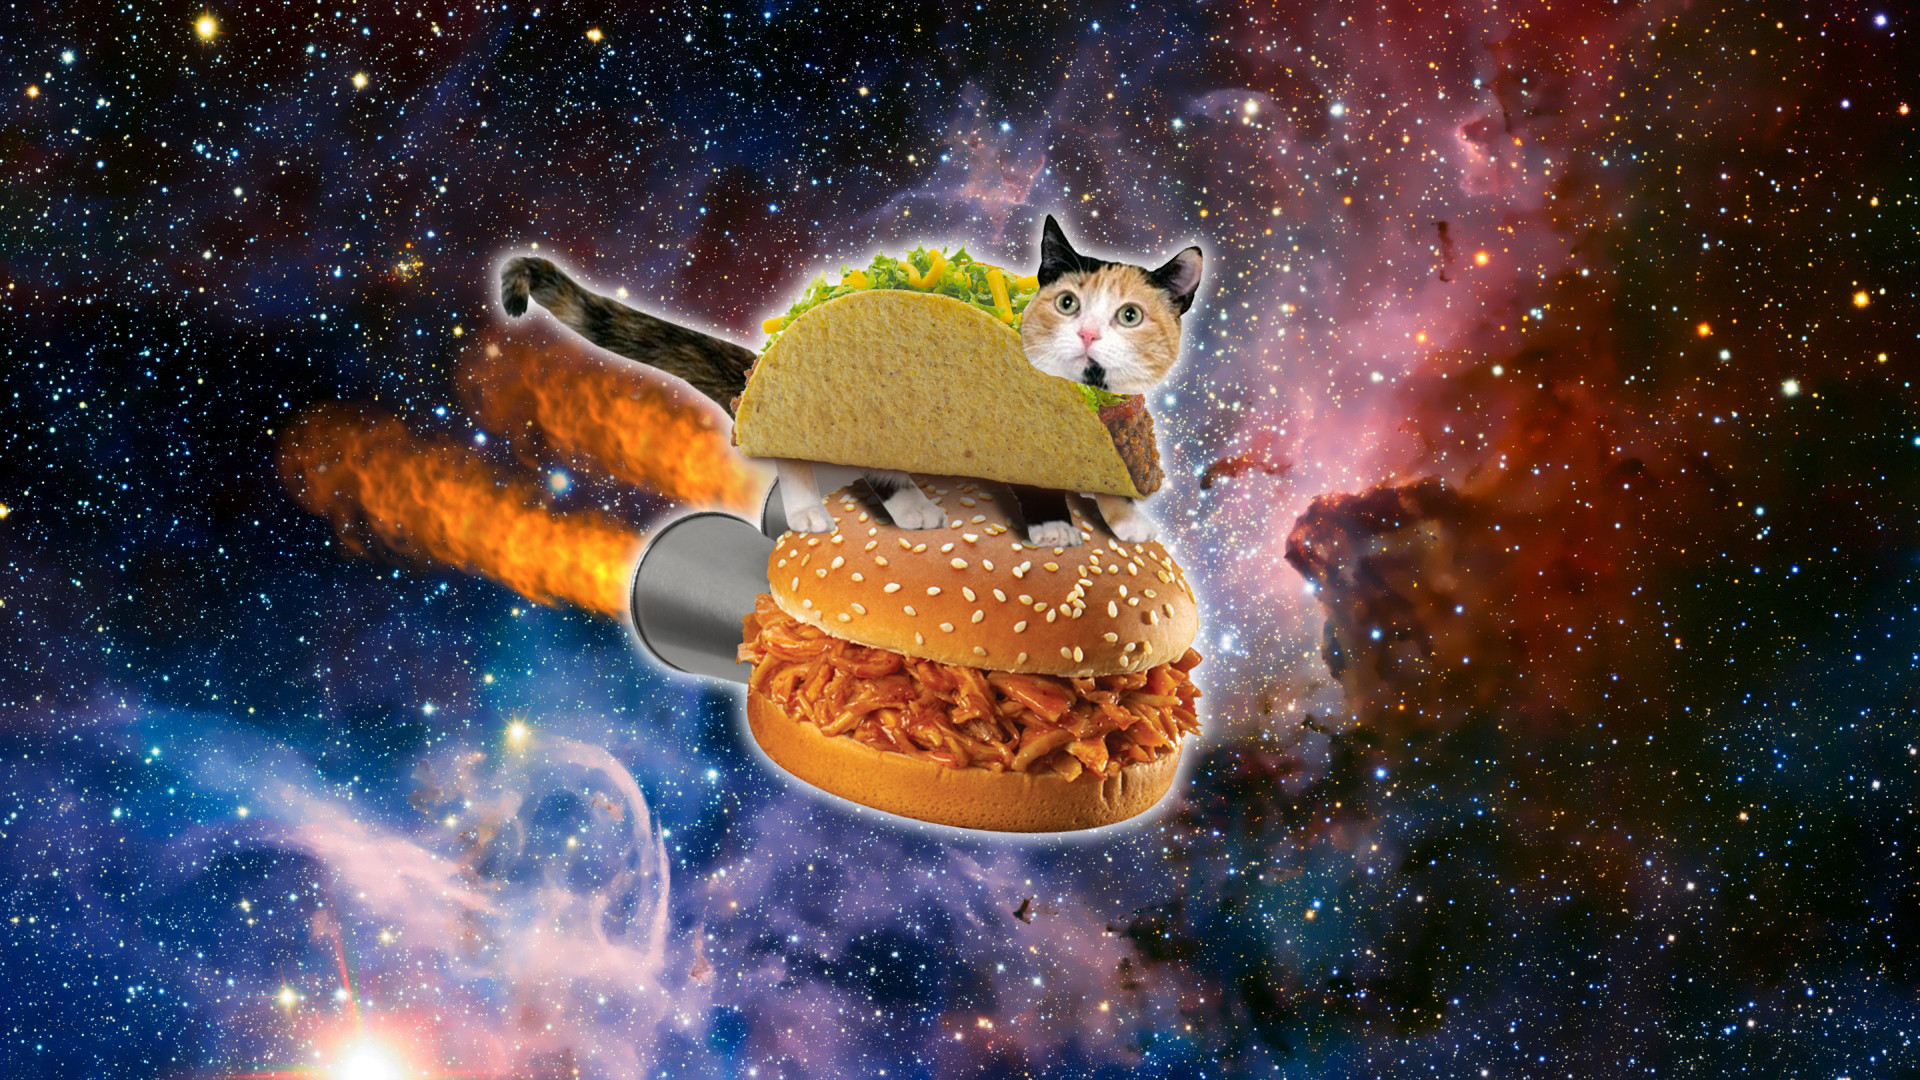 Res: 1920x1080, Space Cat Wallpaper Mobile